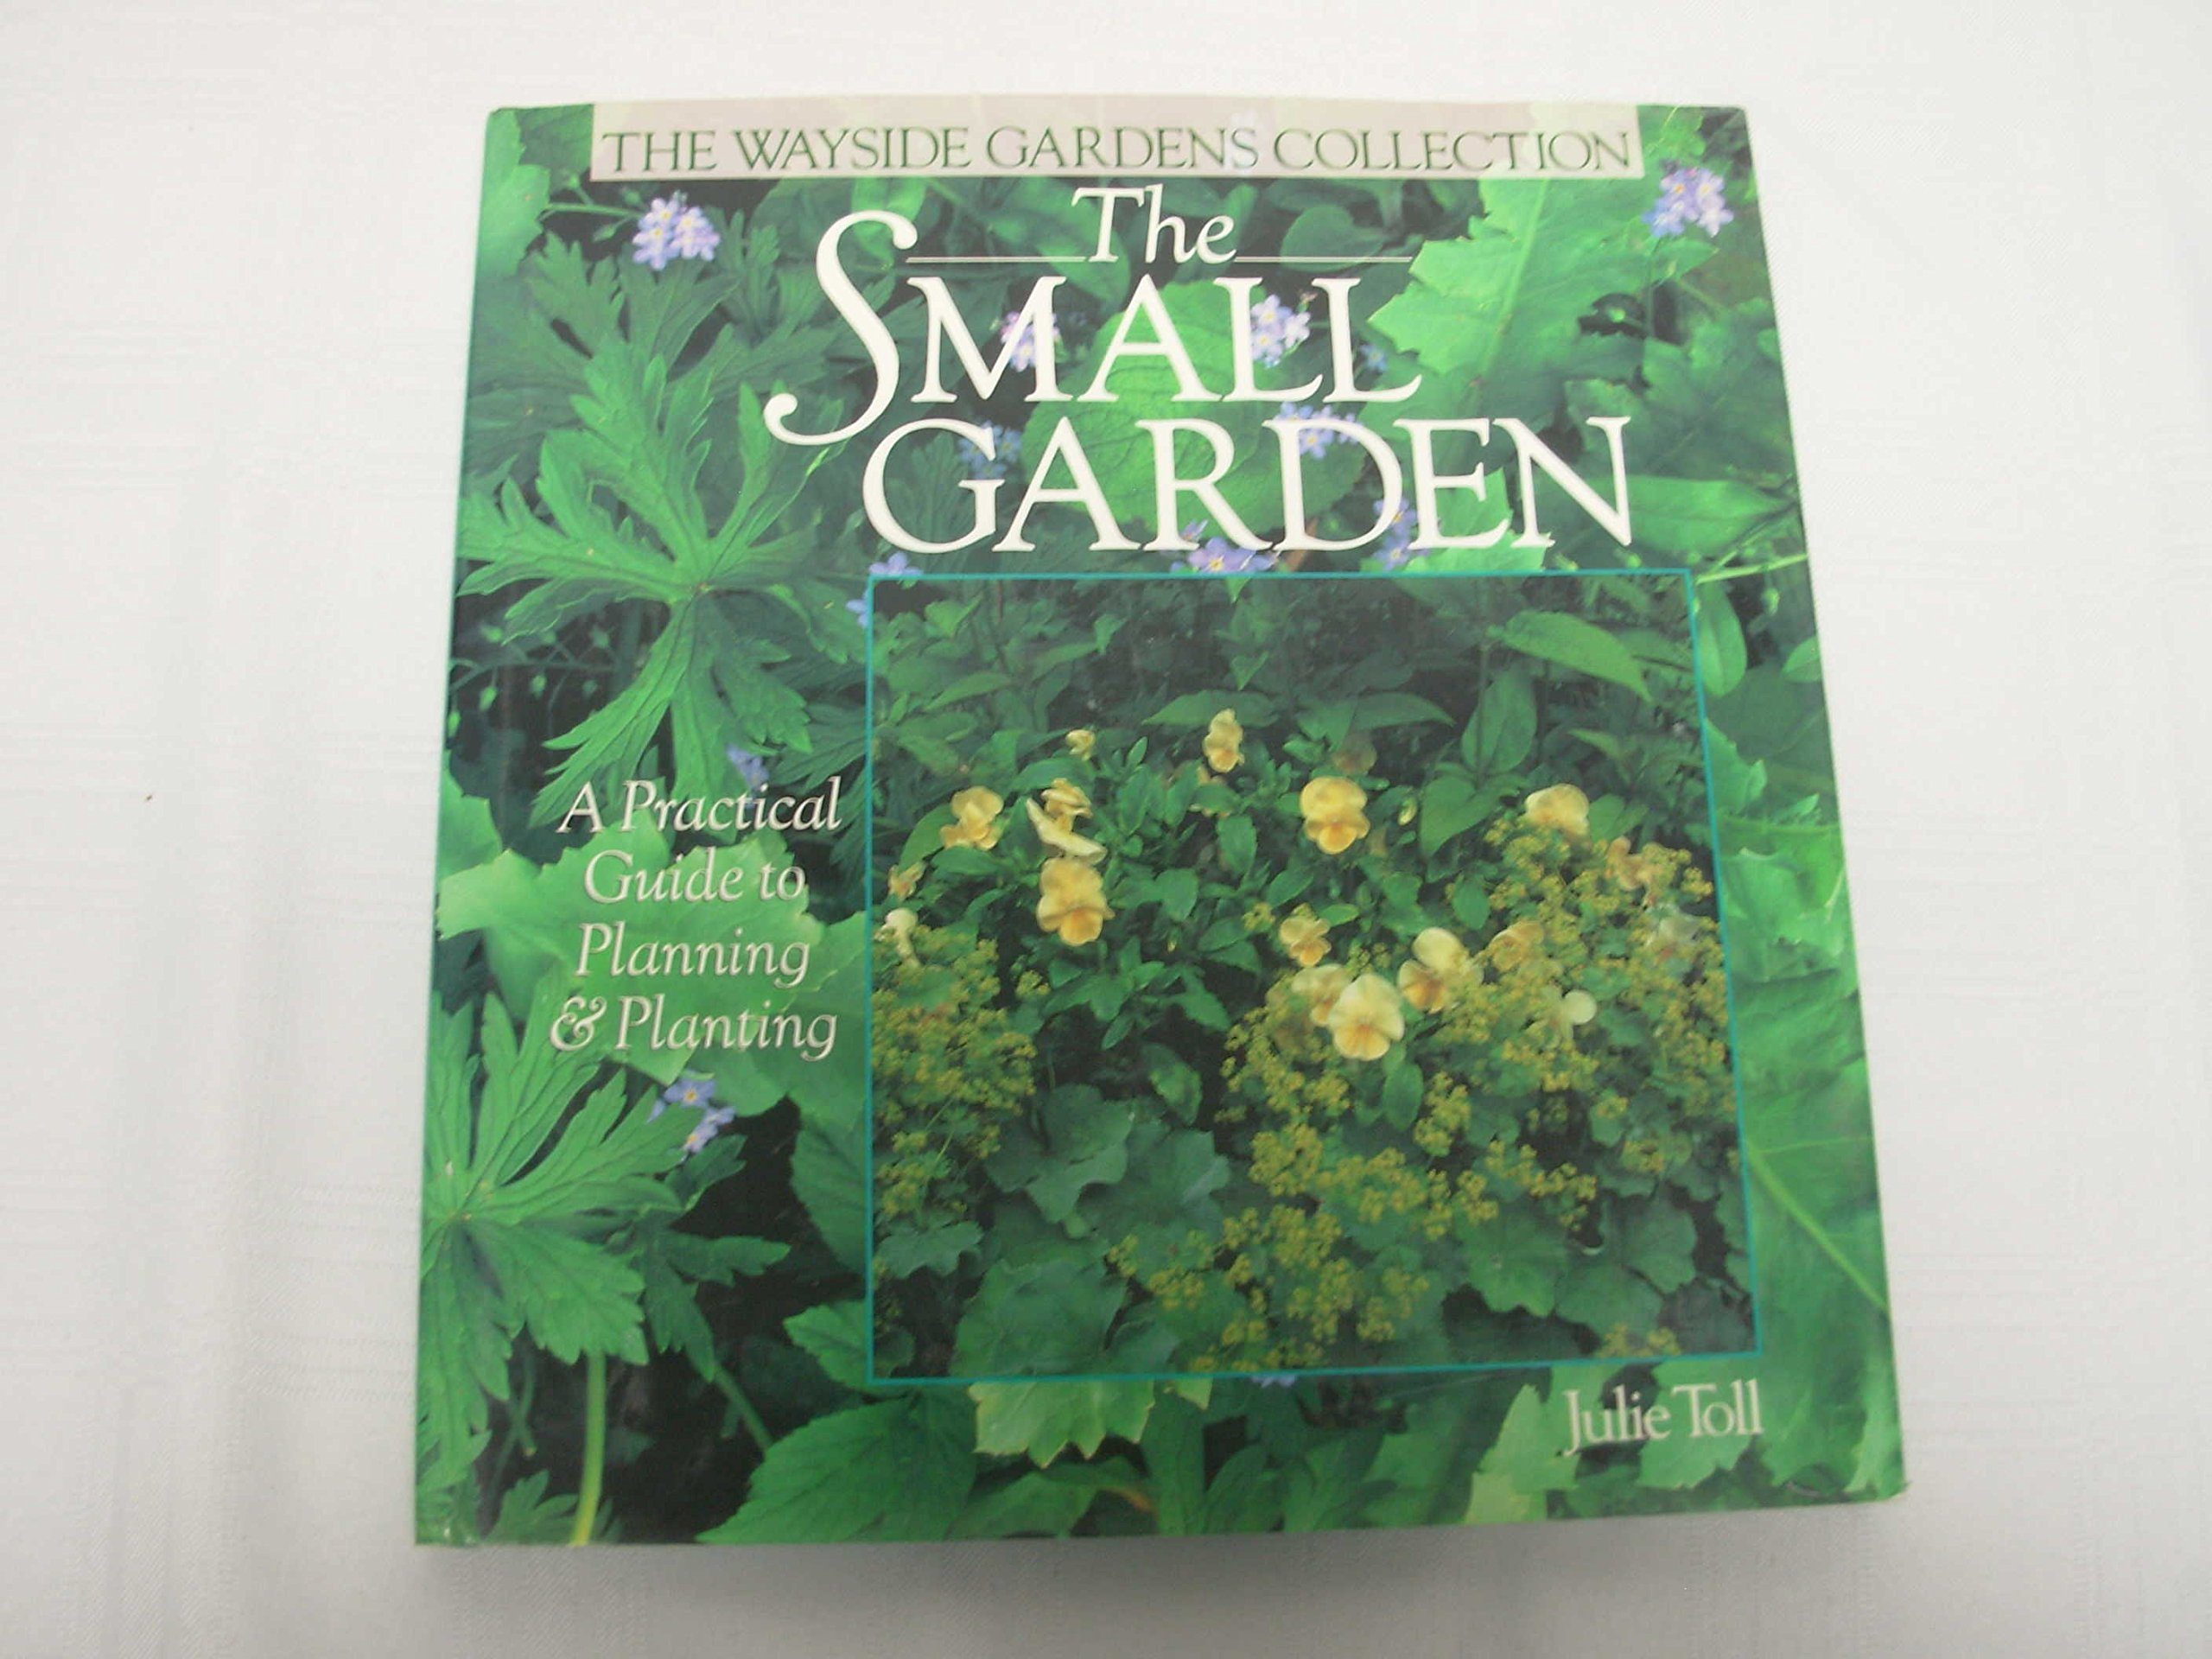 The Small Garden: A Practical Guide to Planning & Planting (Wayside Gardens Collection)